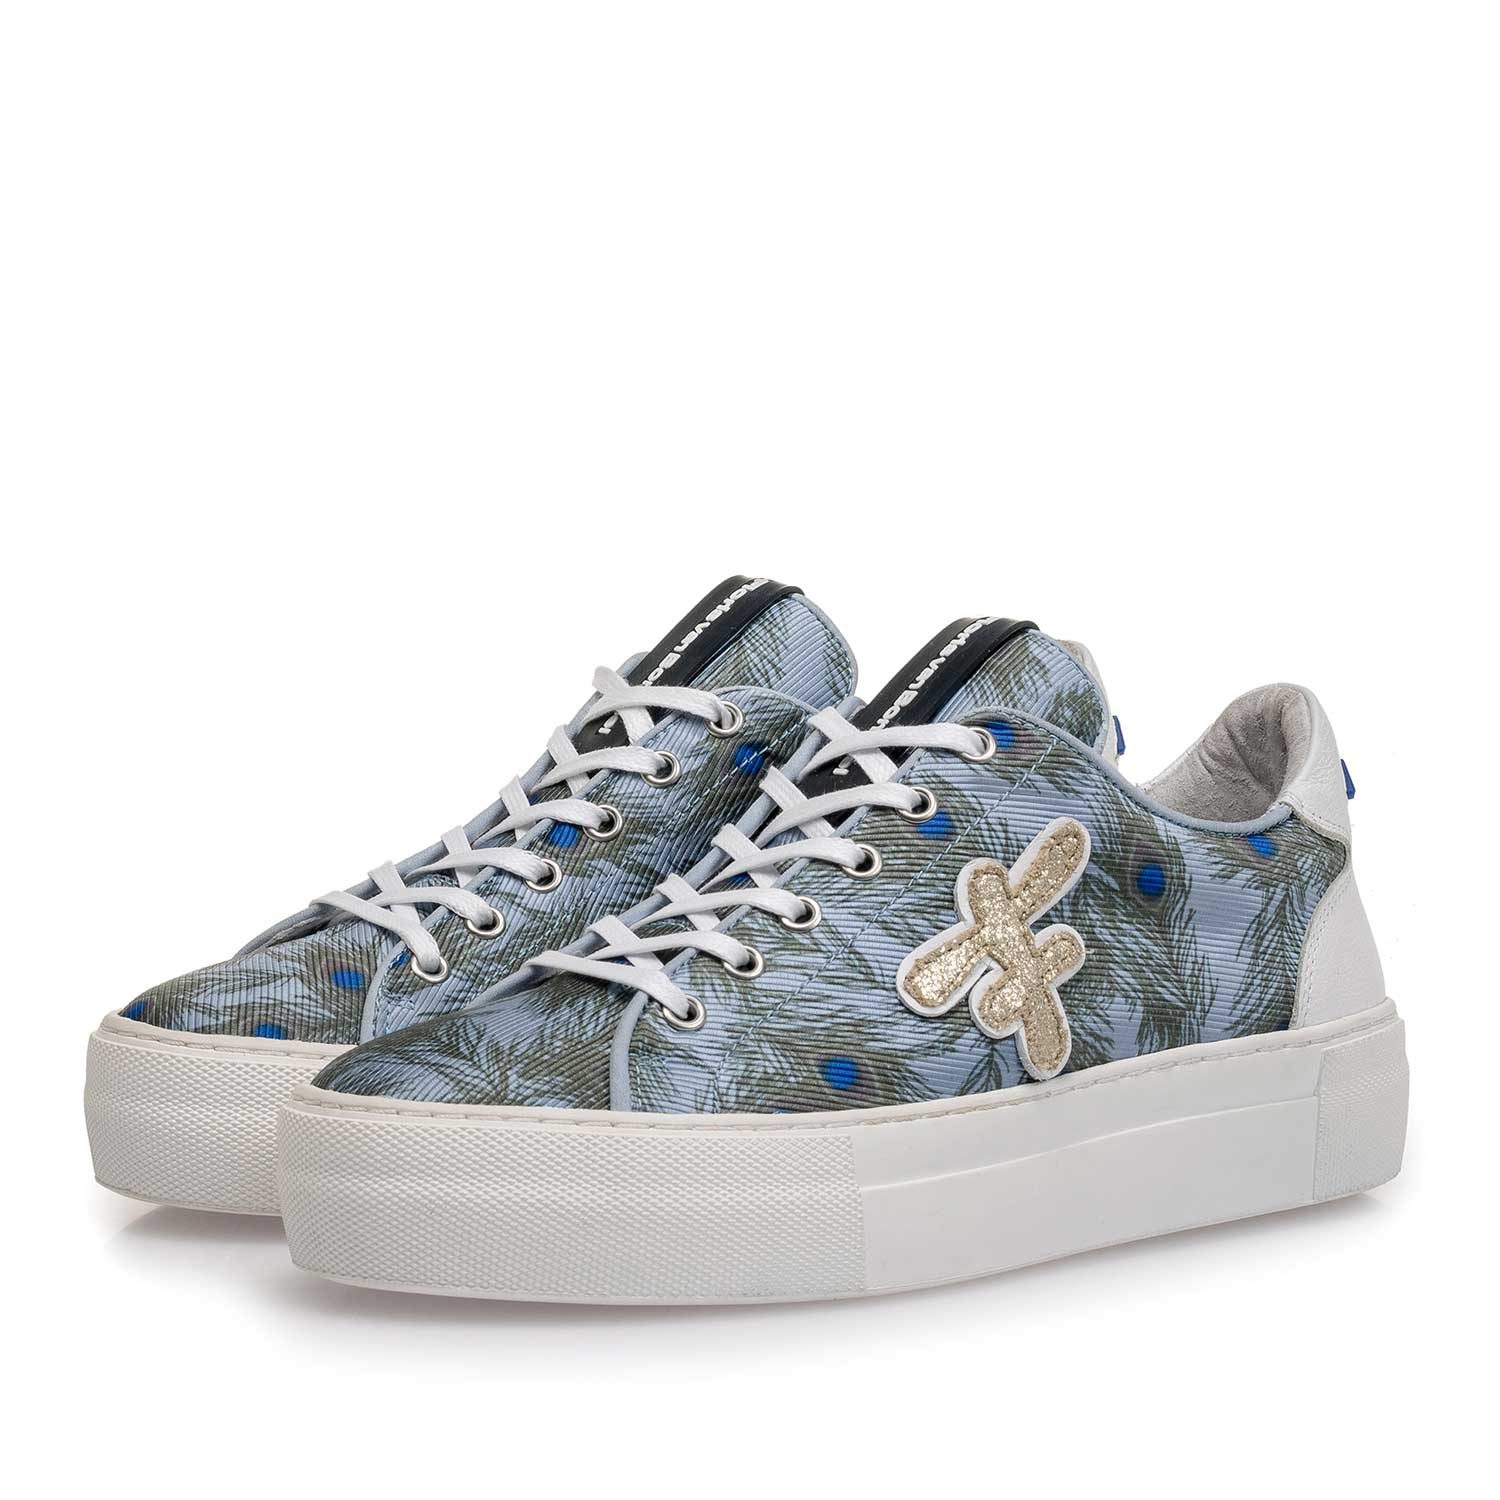 85267/01 - Light blue suede sneaker with fabric parts